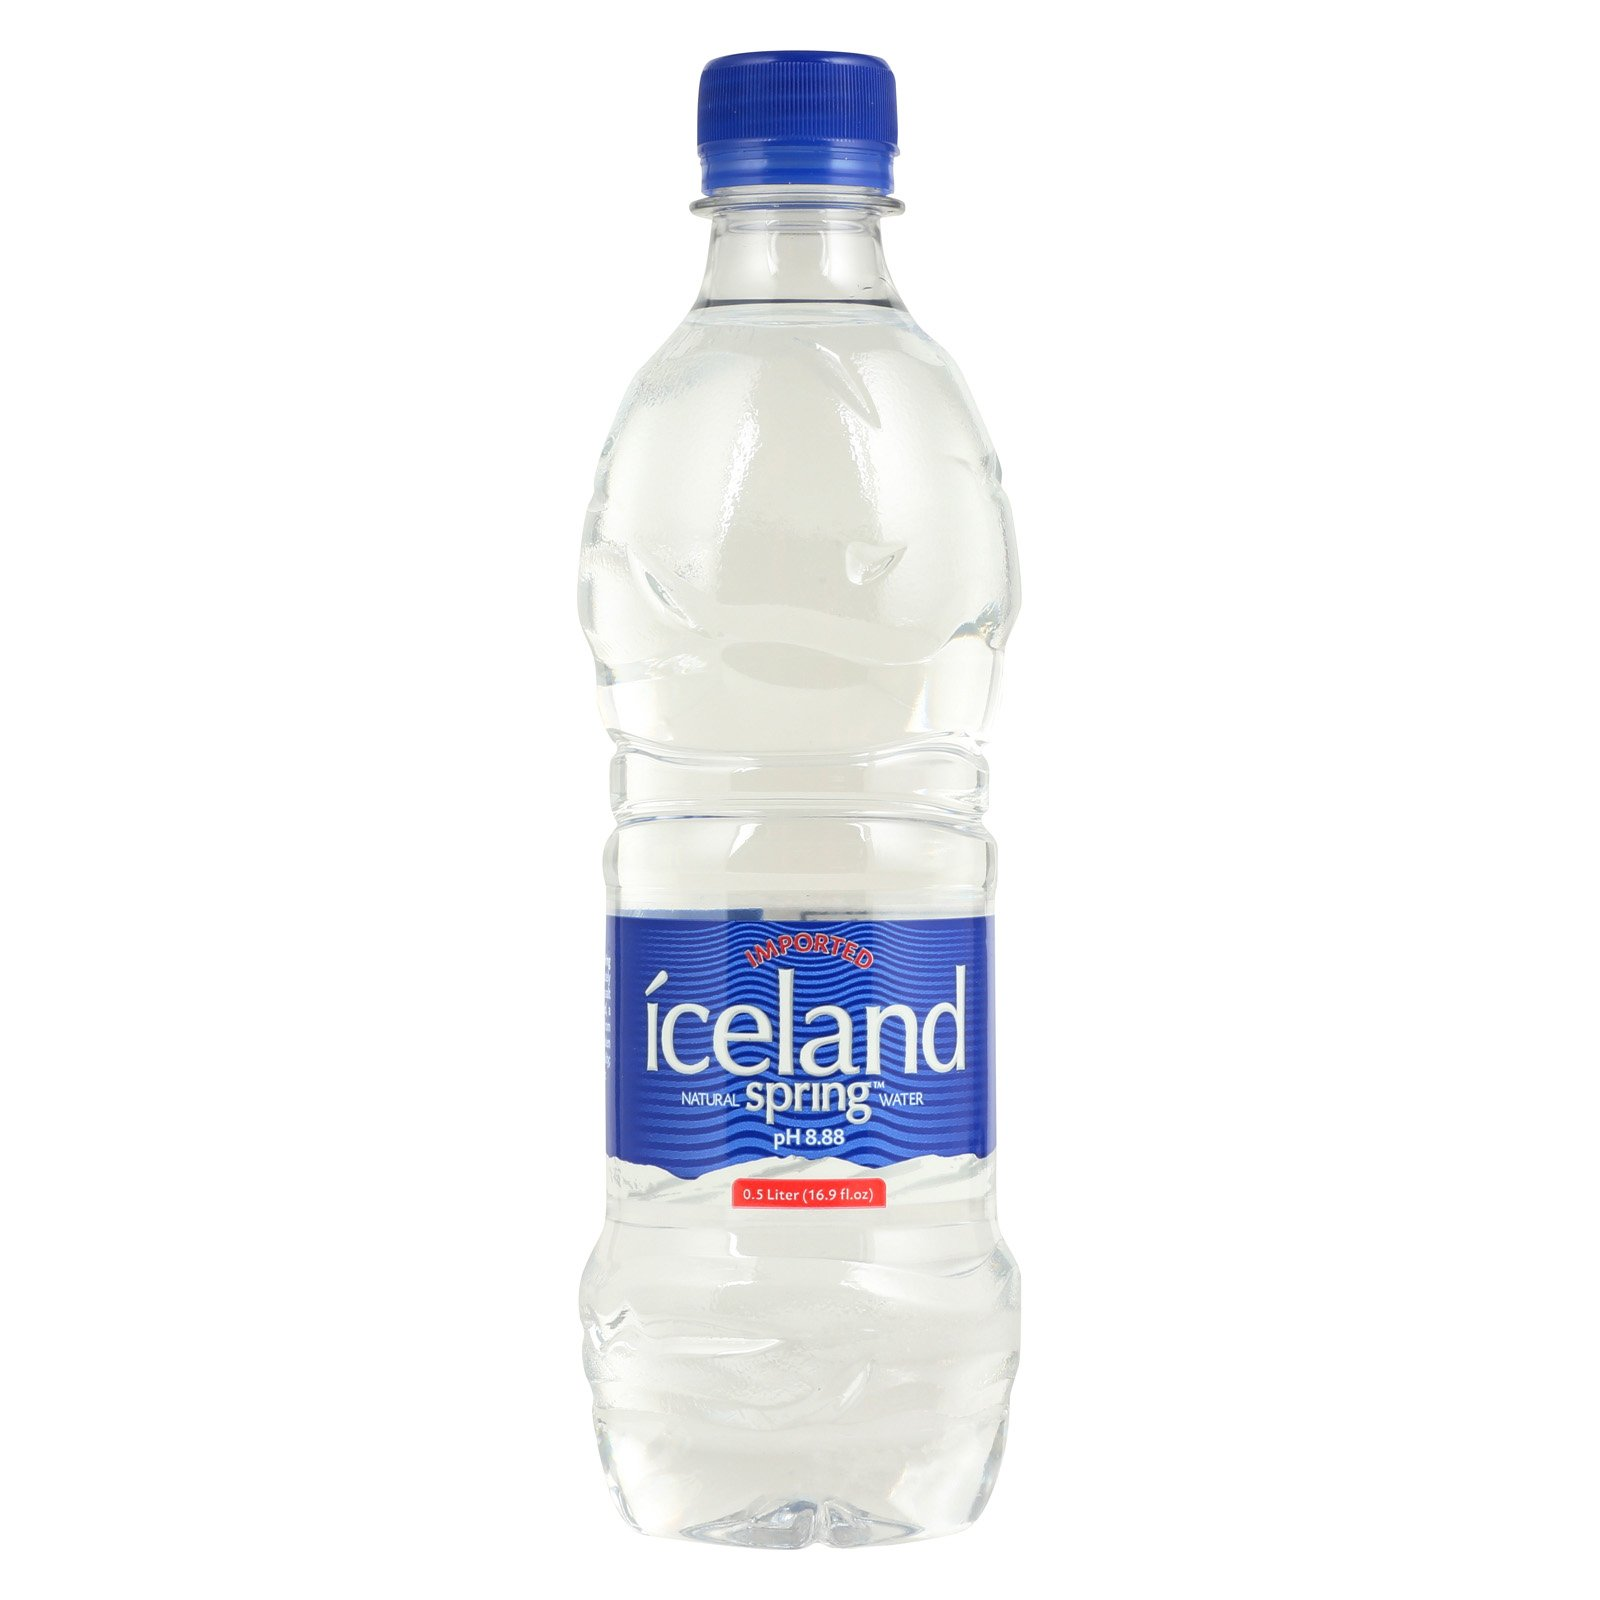 Iceland Springs Spring Water - Case of 24 - 16.9 Fl oz. by Iceland Springs